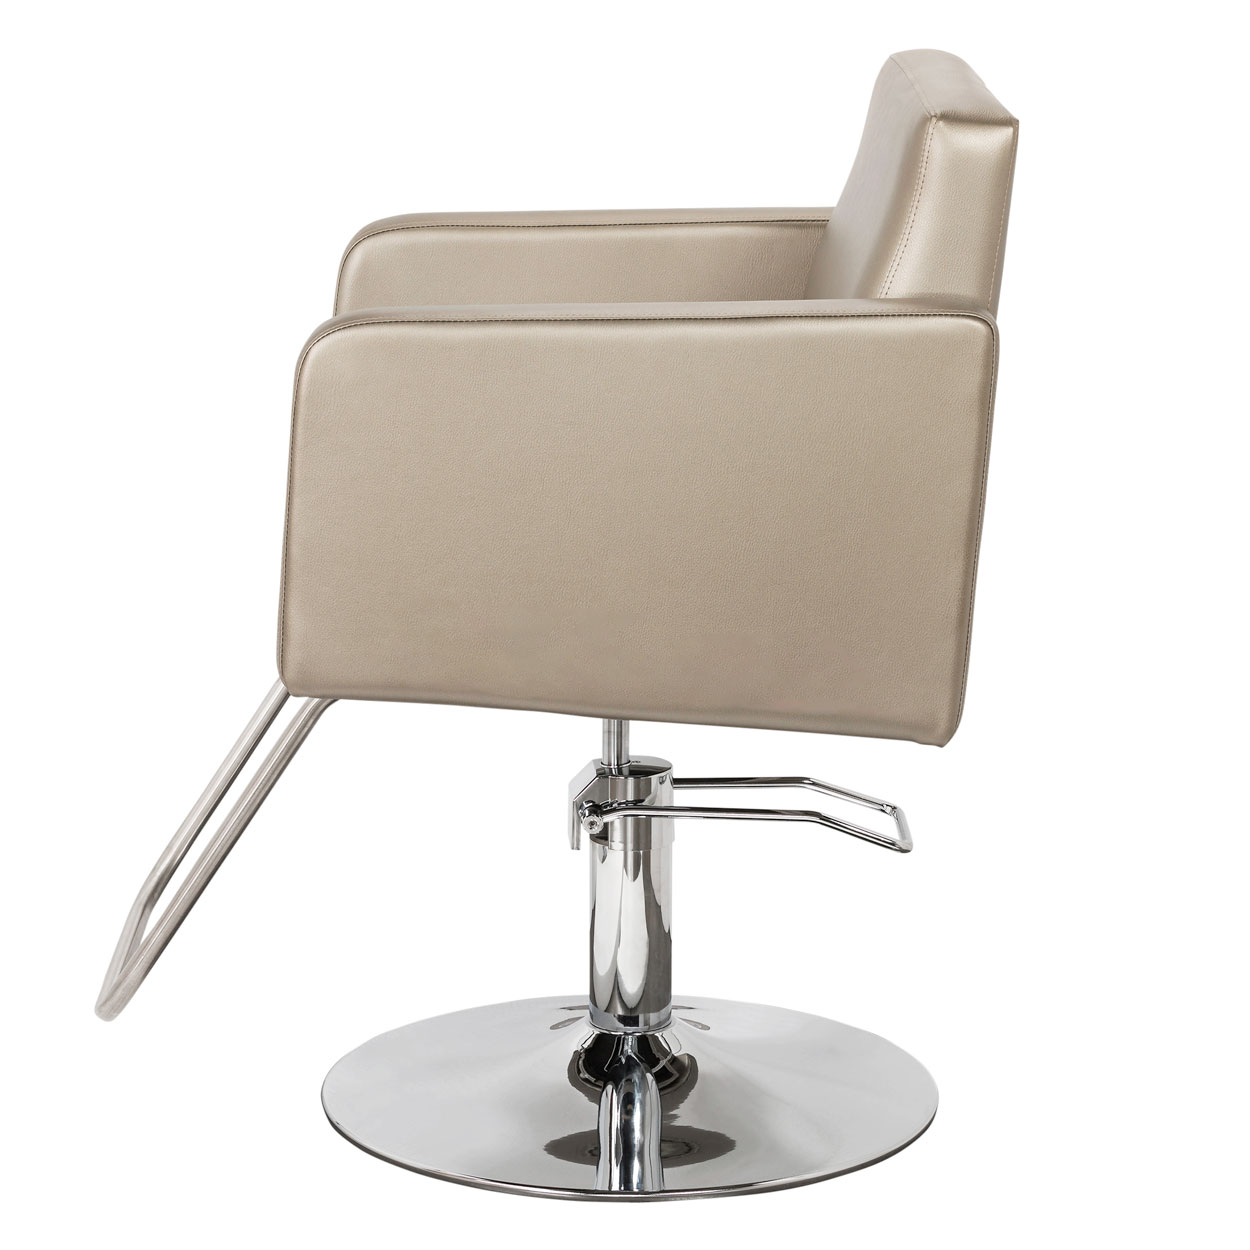 Custom Modin Hair Salon Styling Chair alternative product image 2